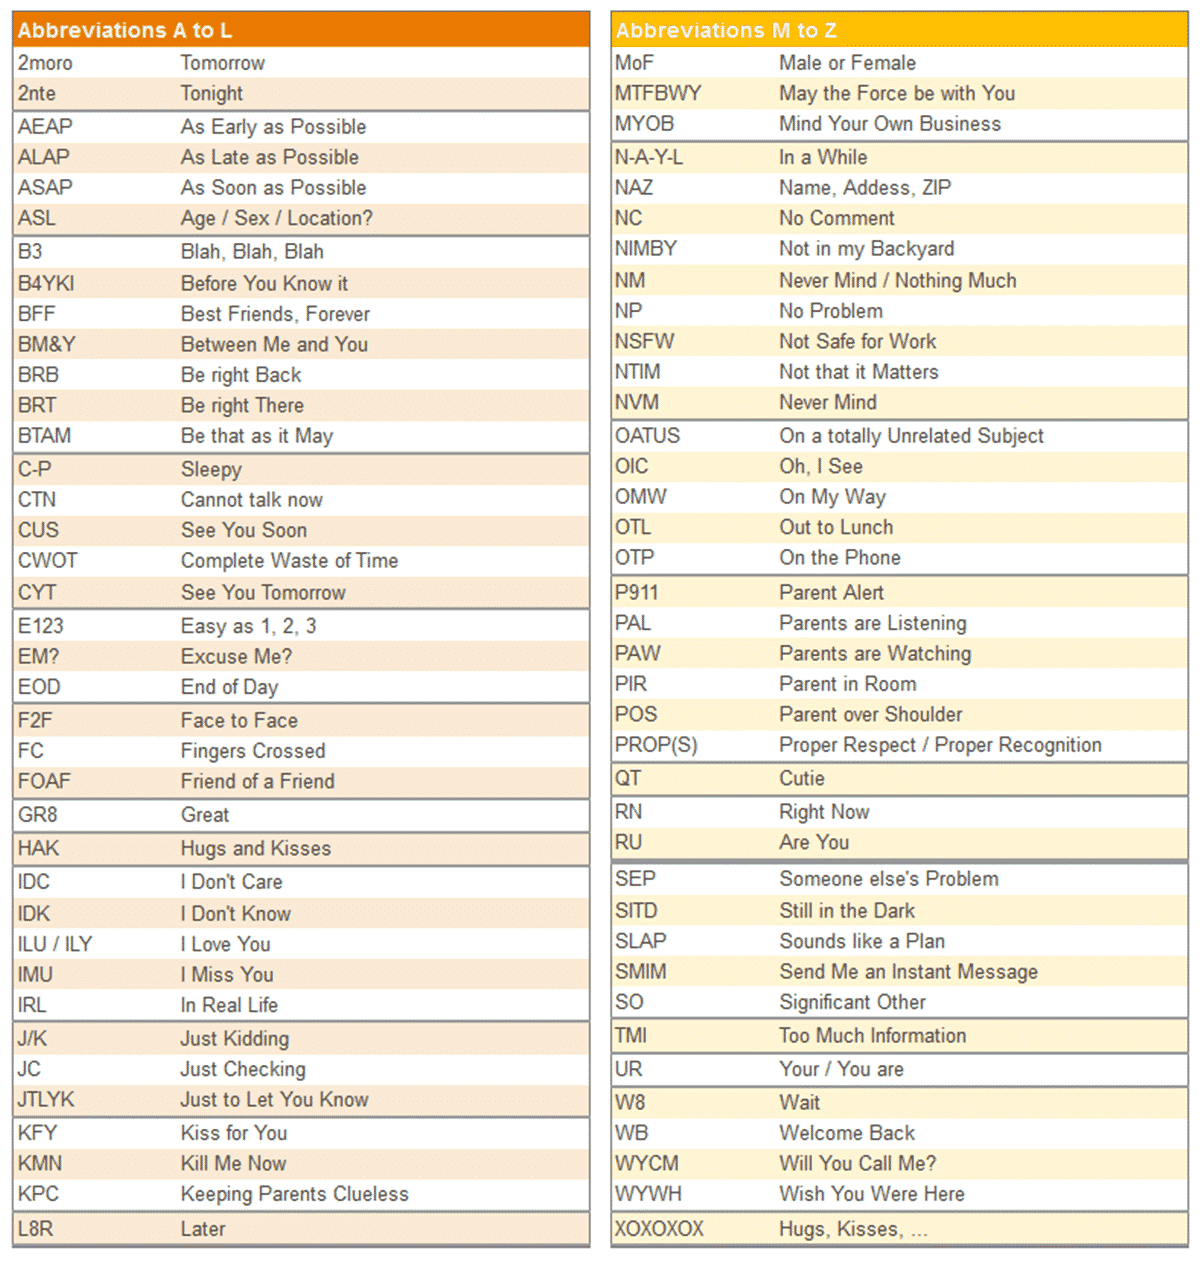 100 Popular Texting Abbreviations And Internet Acronyms In